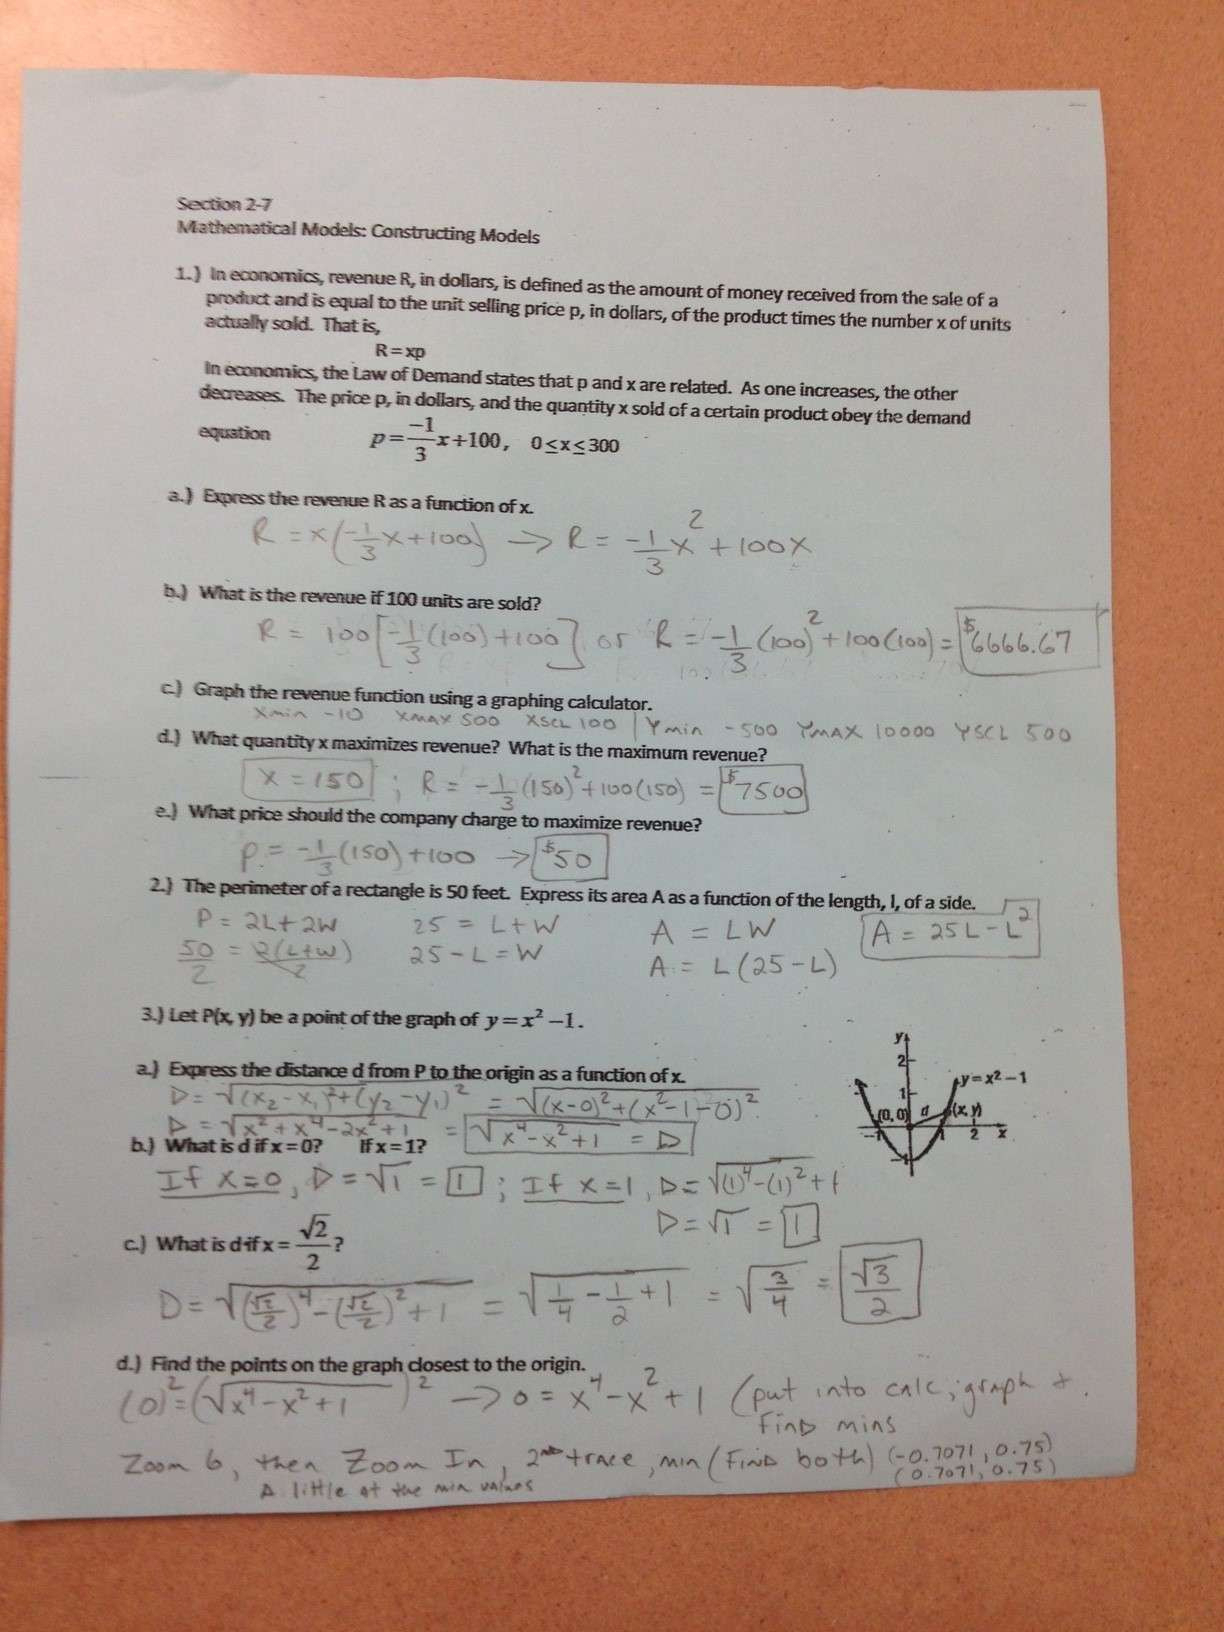 Formalizing Relations And Functions Worksheet Answers